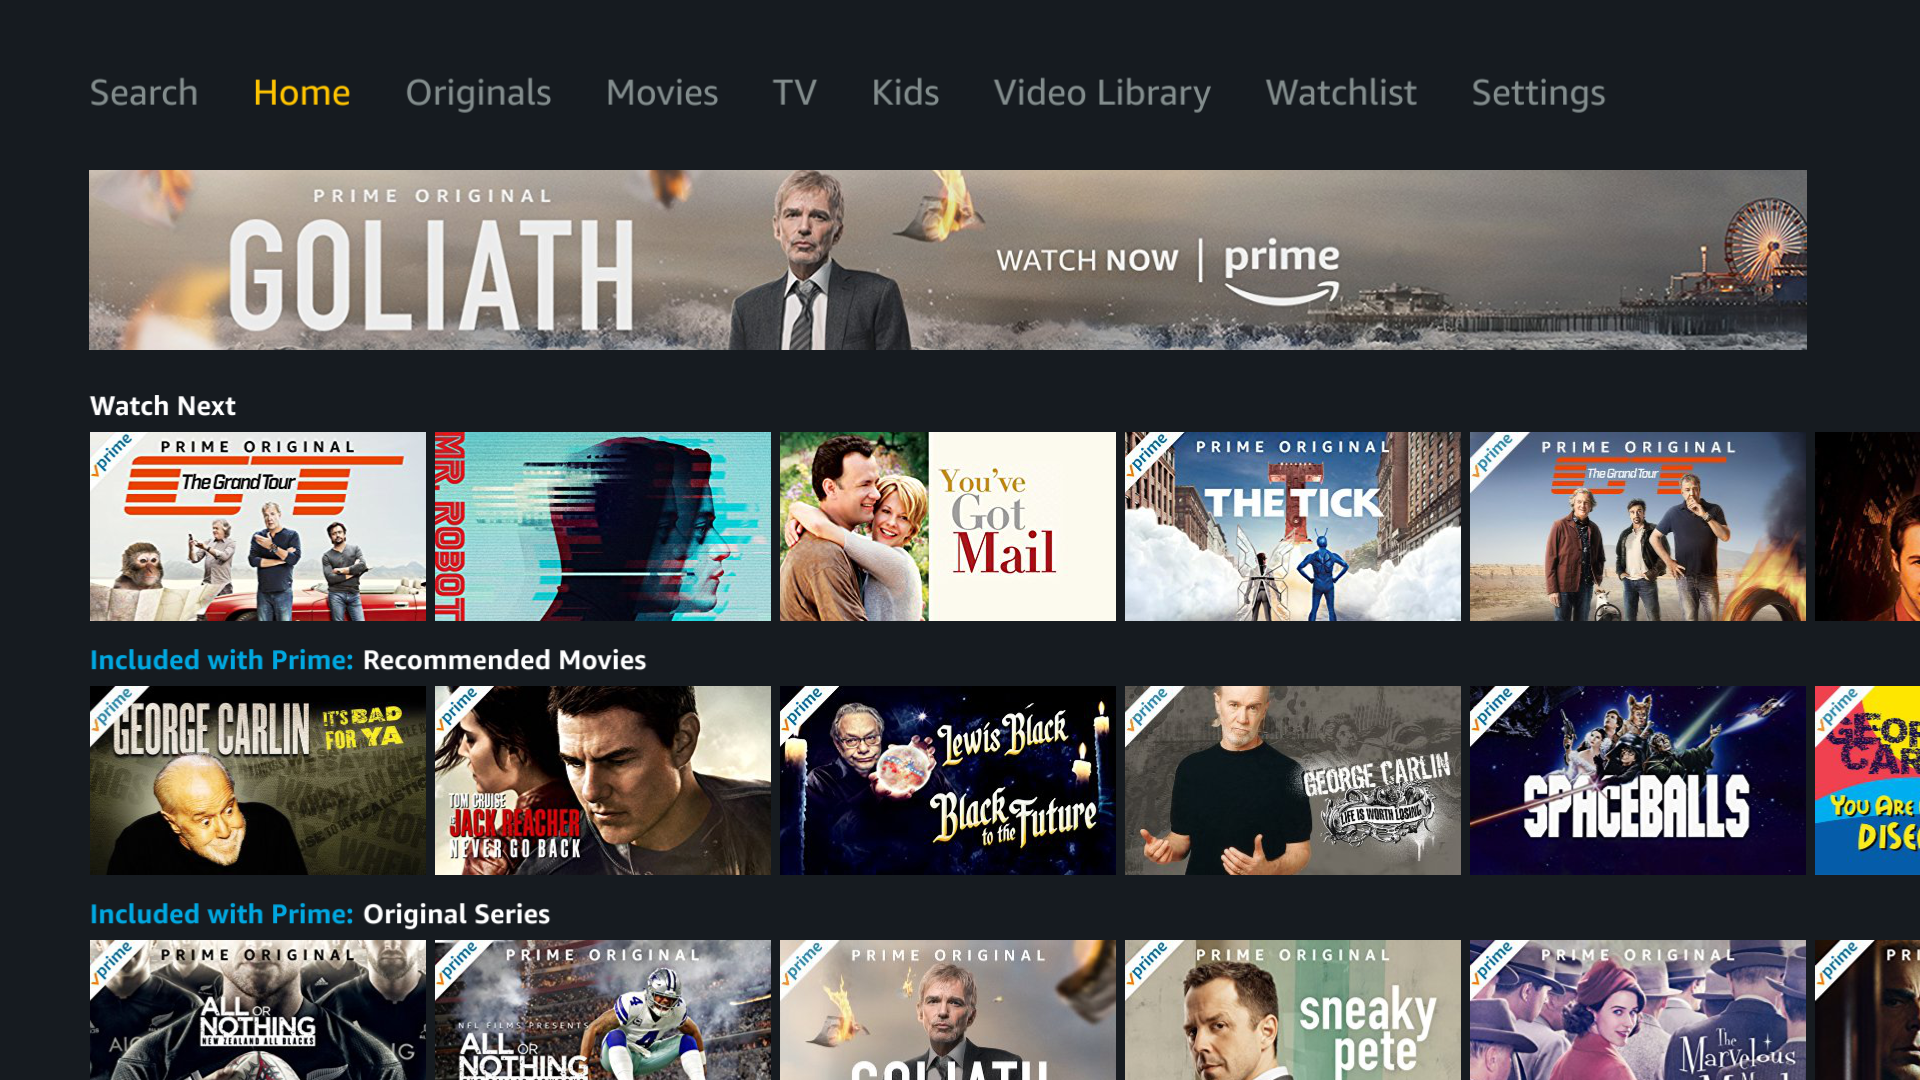 Stream 4K HDR movies and shows on Amazon Prime Video.